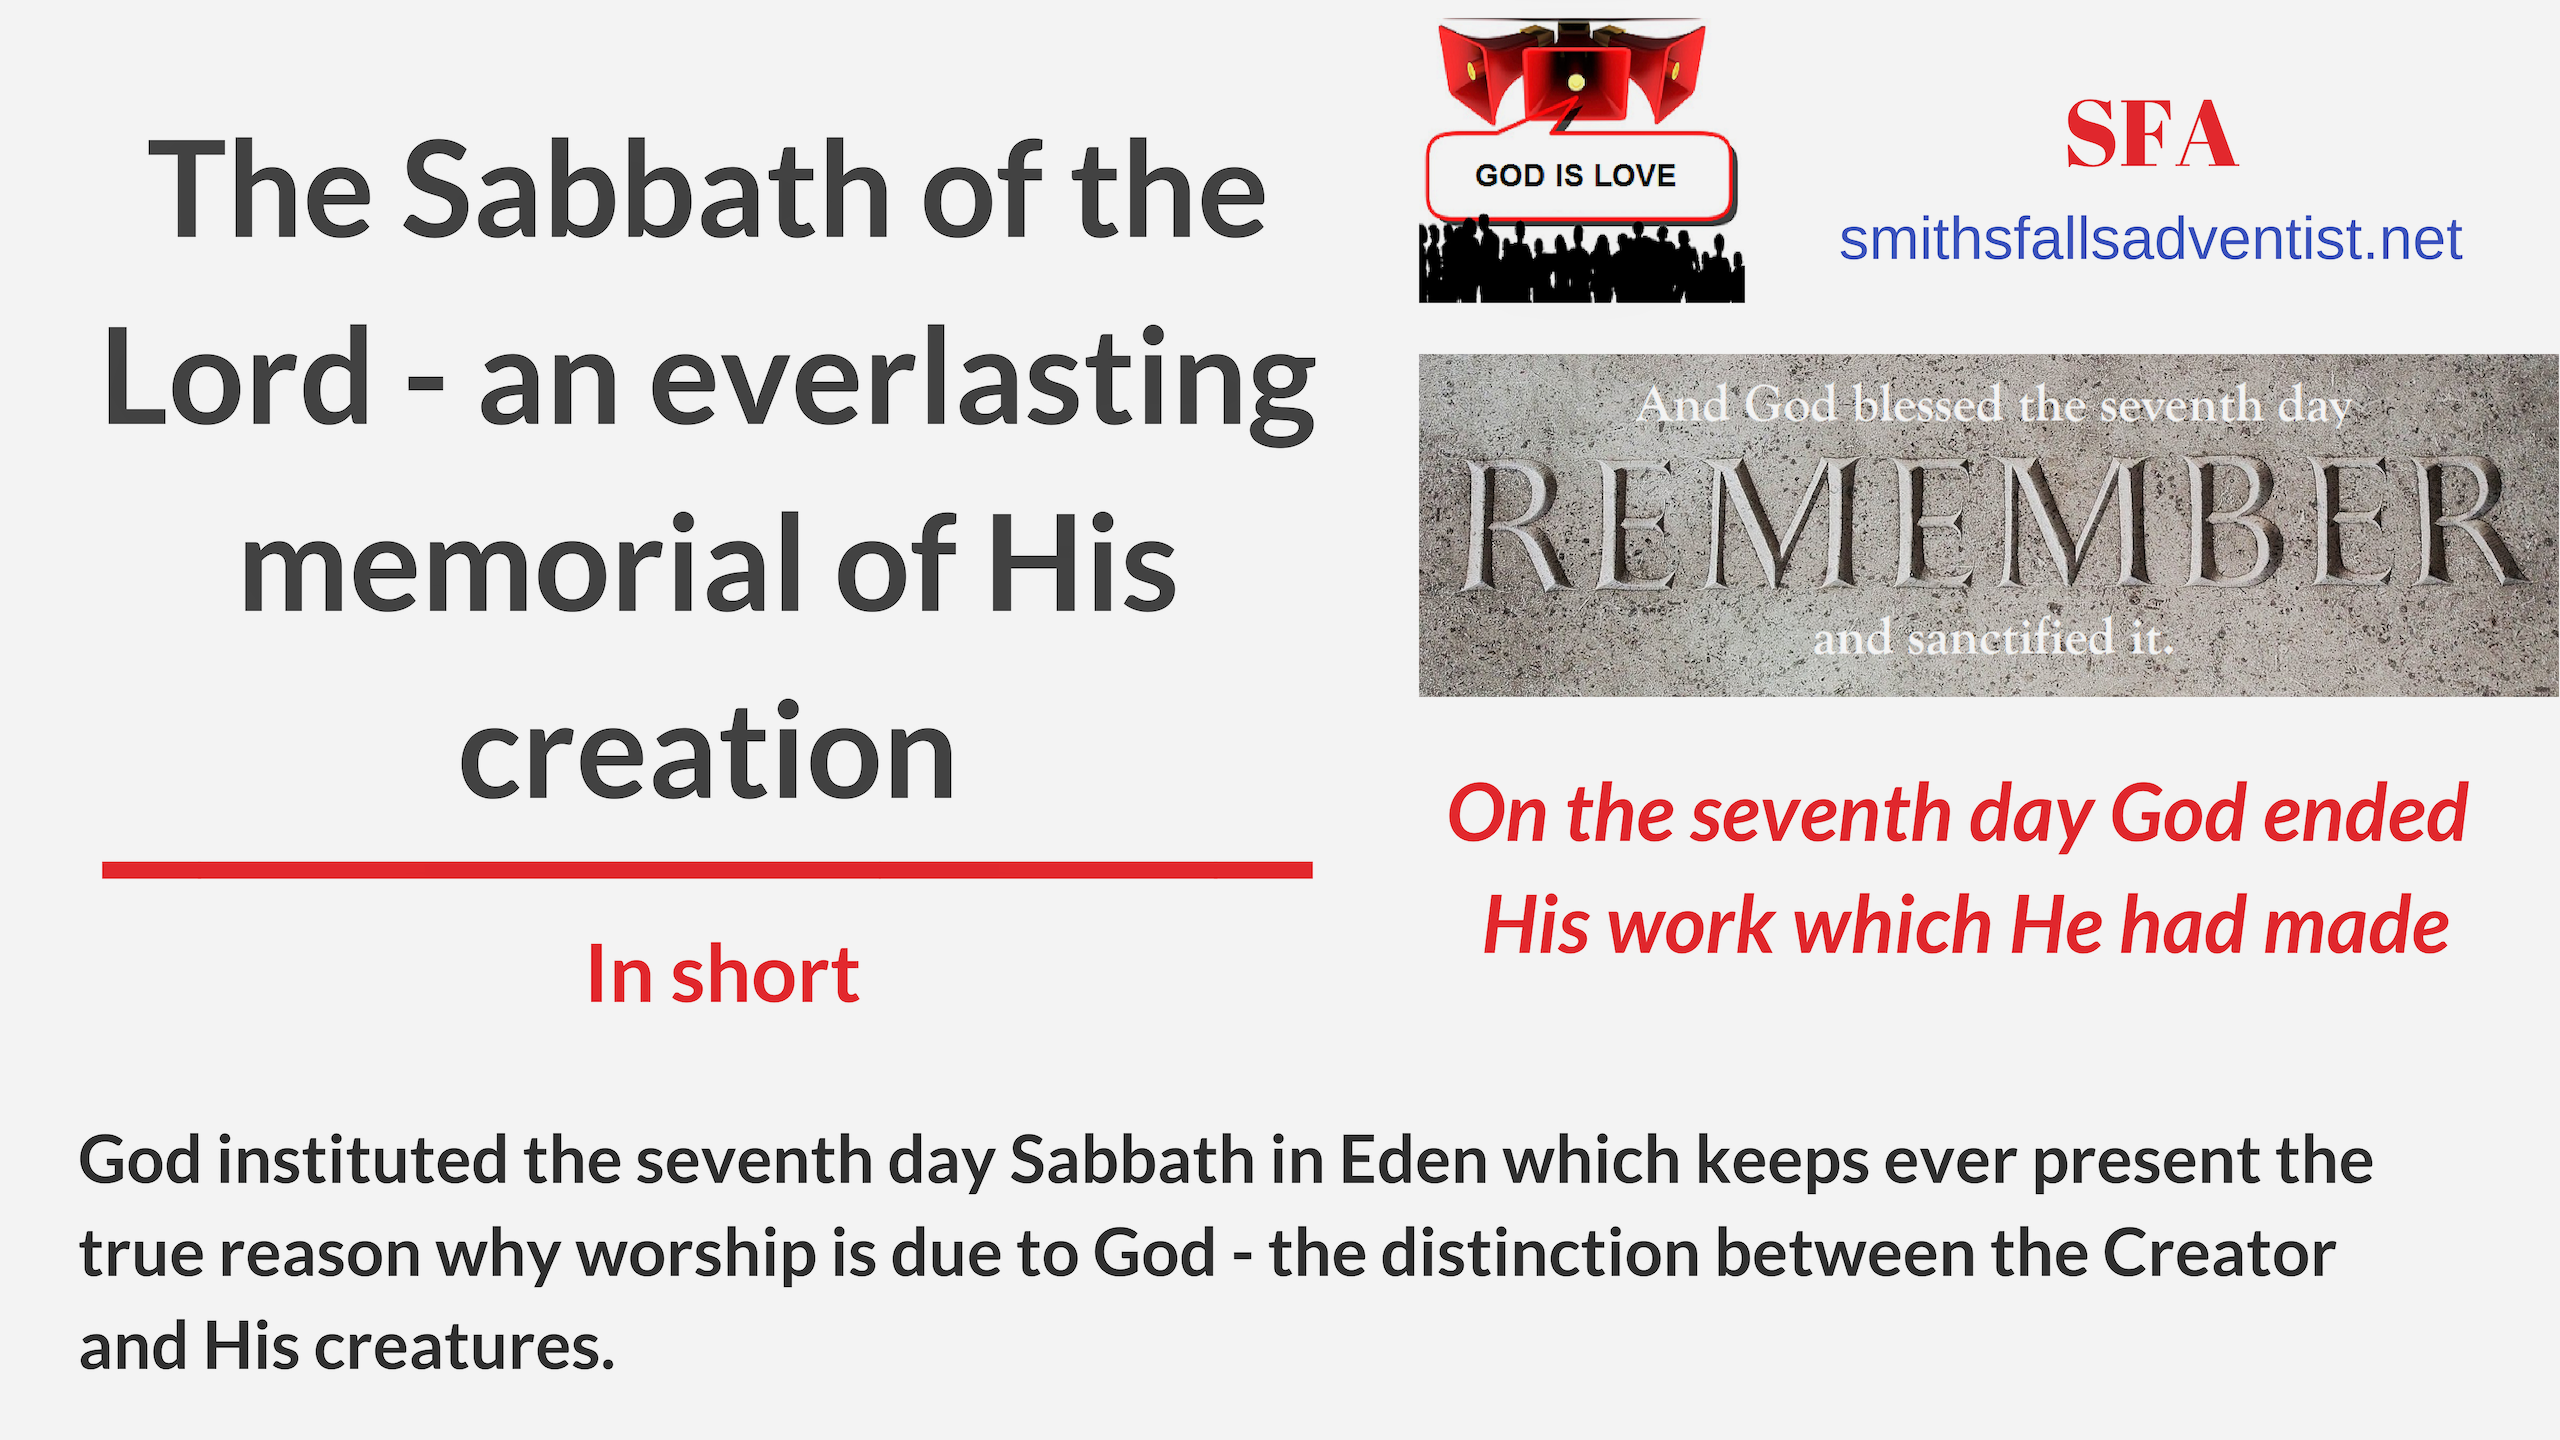 Title-The-Sabbath-of-the-Lord-an-everlasting-memorial-of-His-creation-text-logo